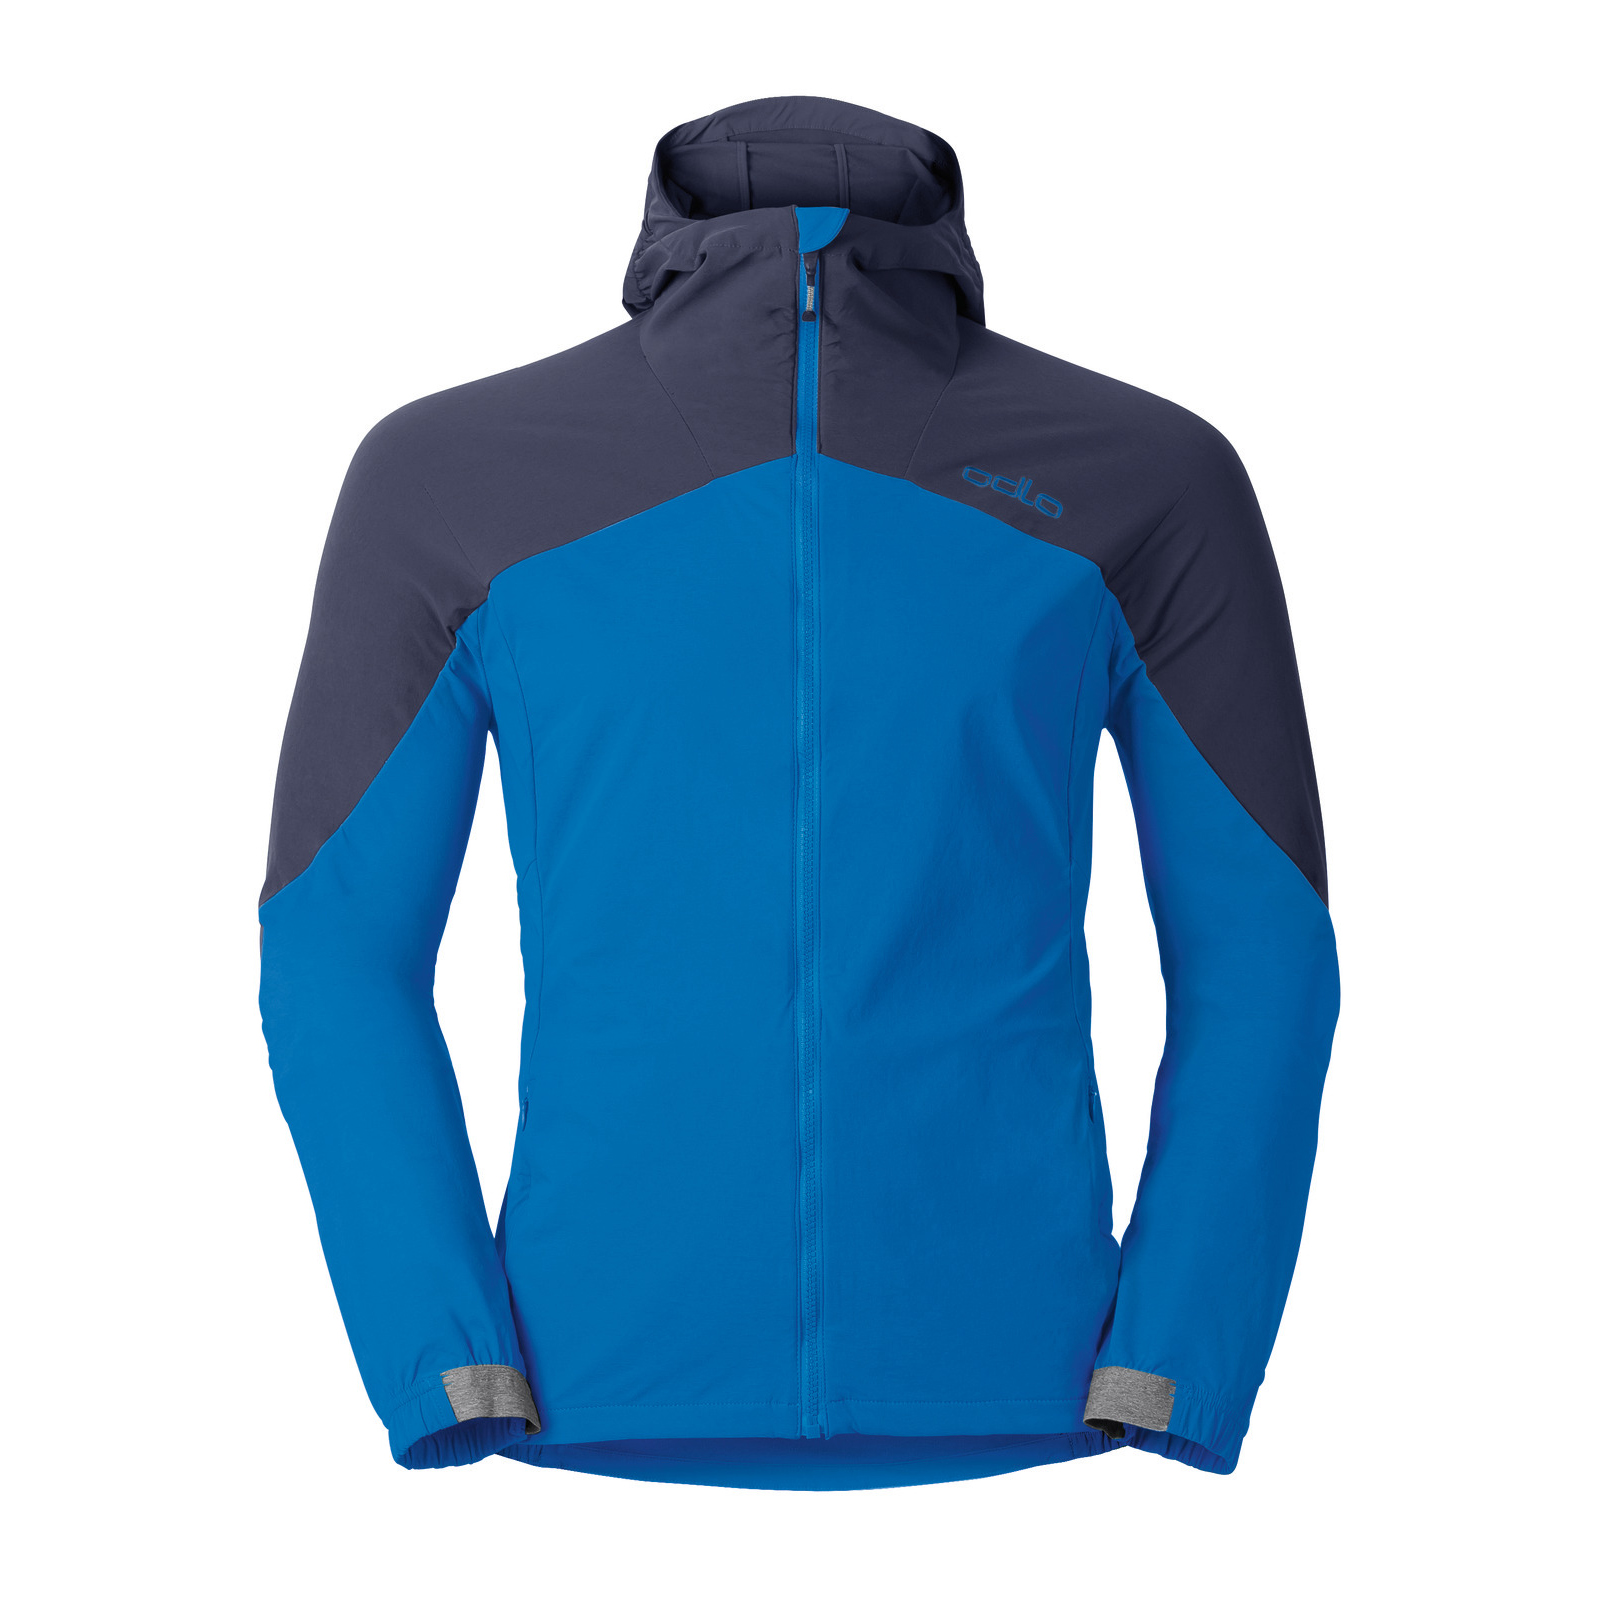 Odlo Flow Jacket | Drectoire Blue/Peacoat